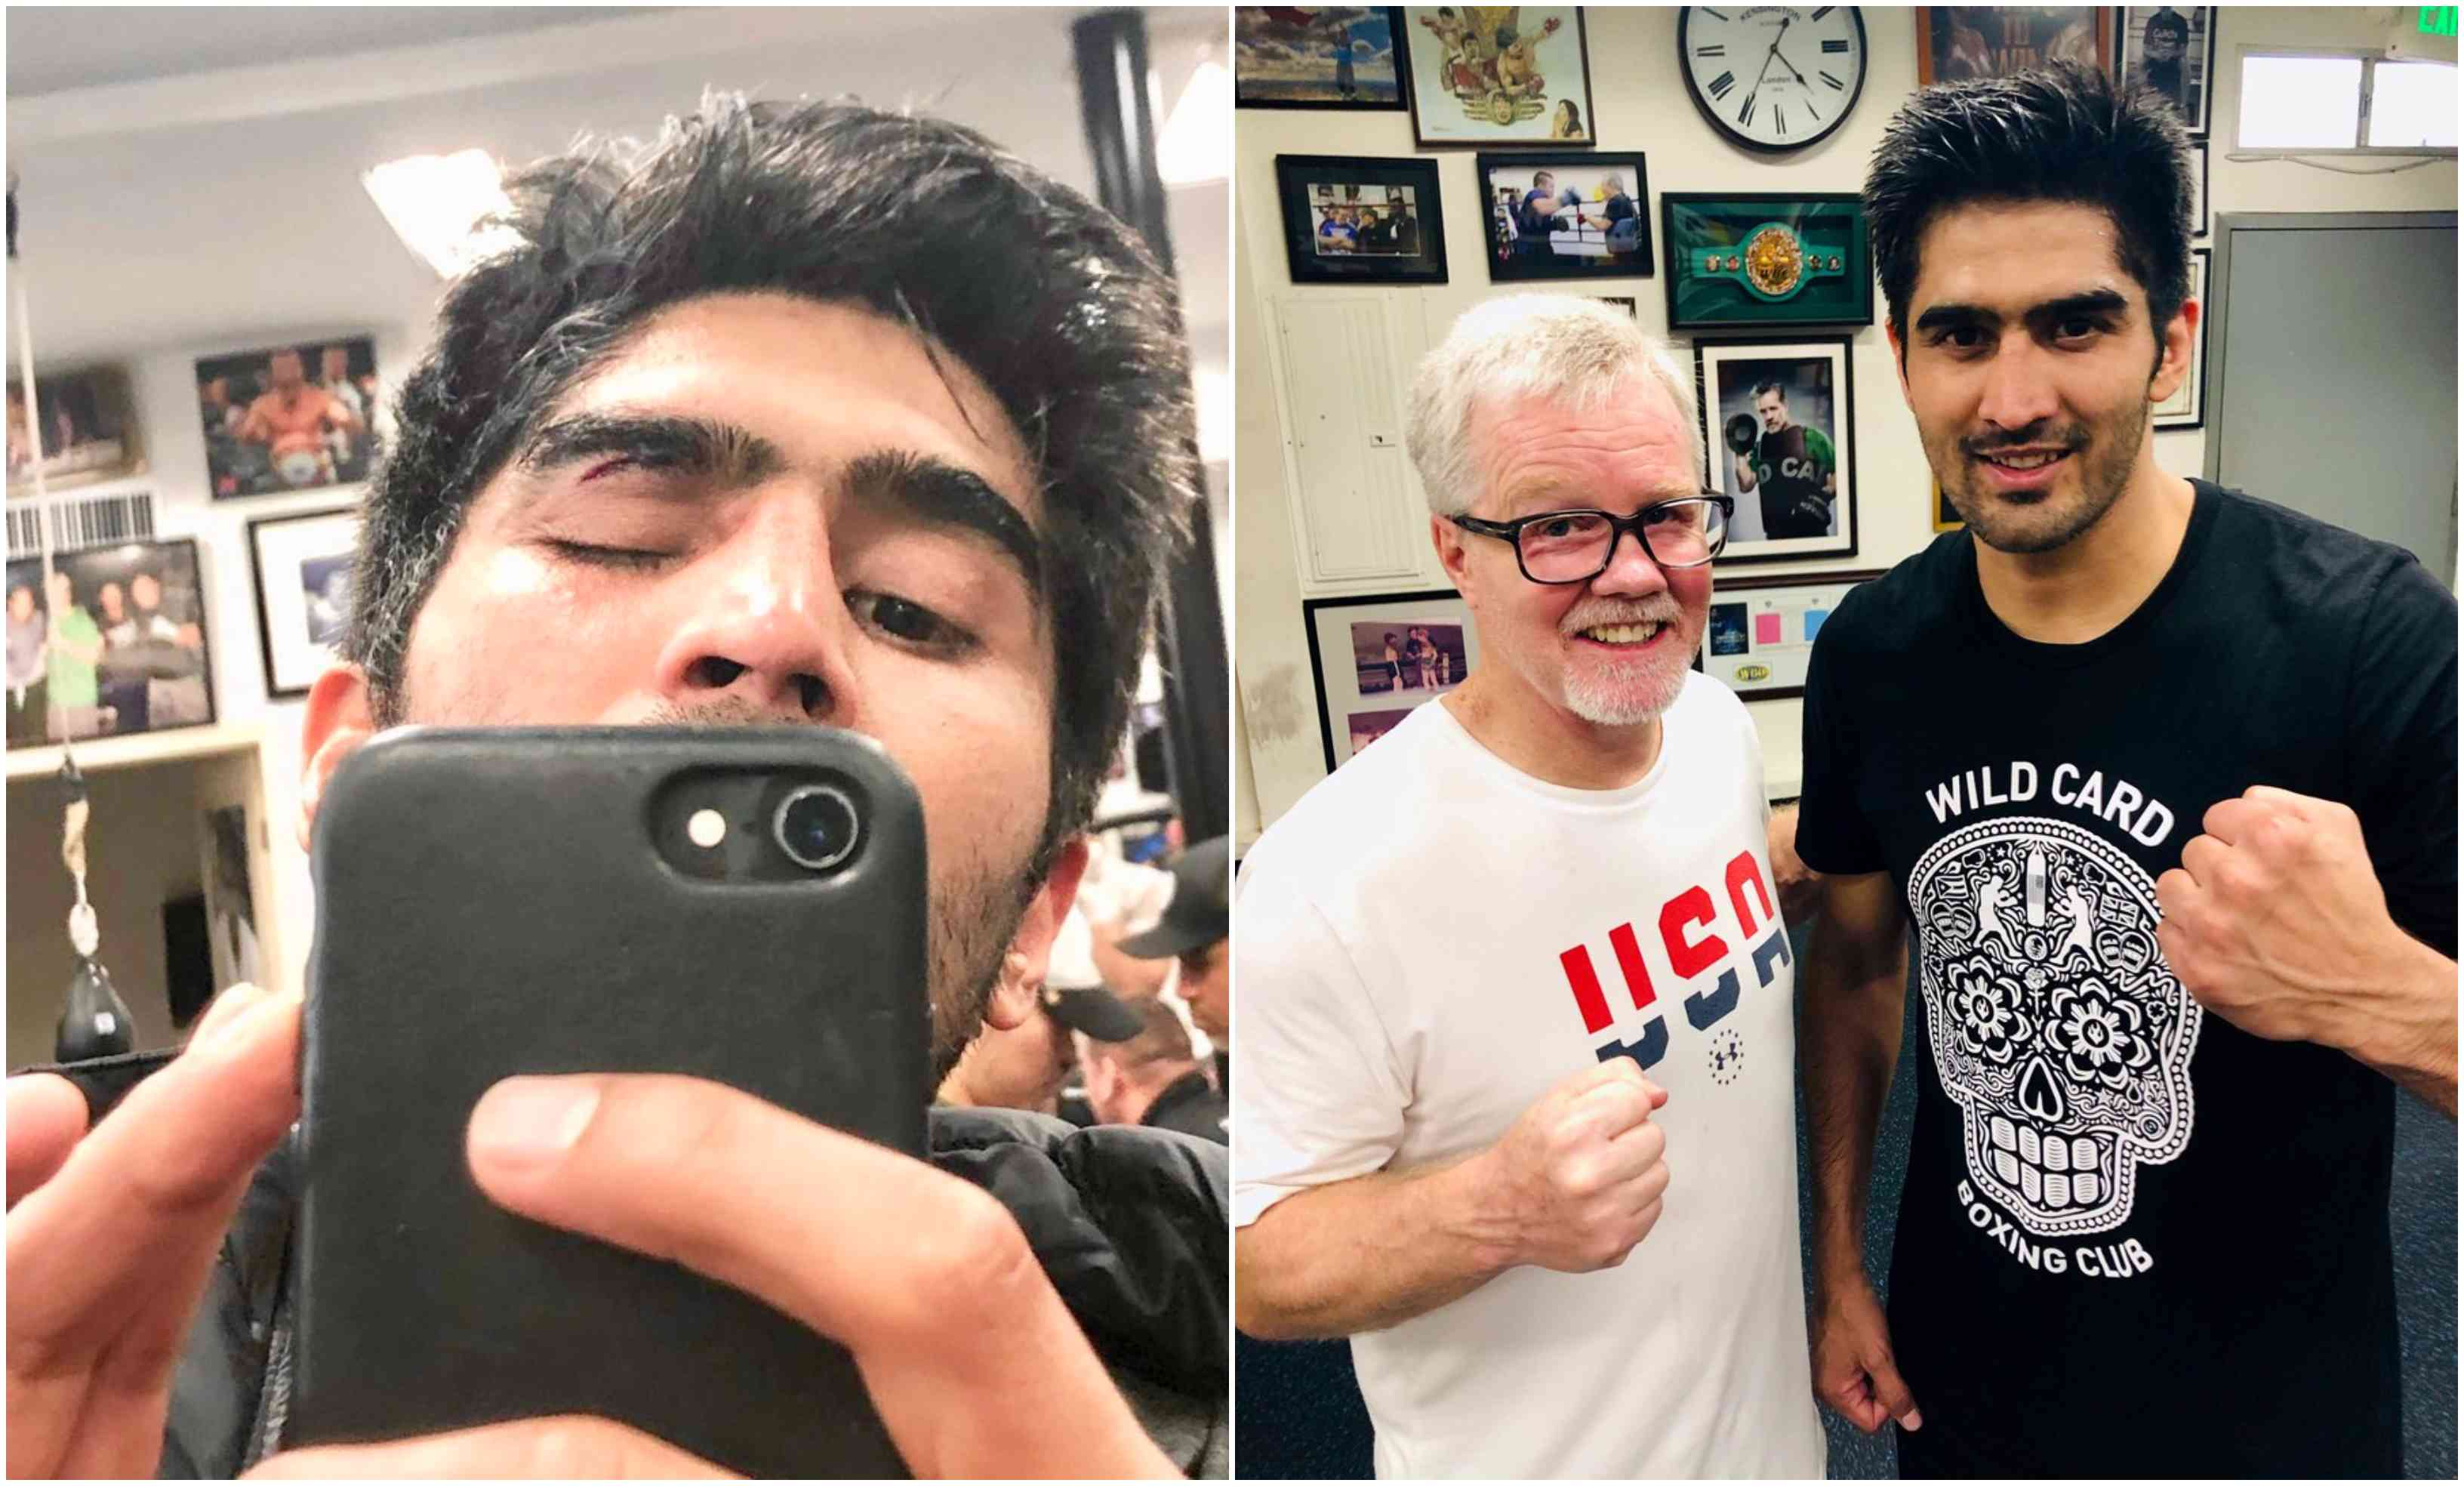 BREAKING: Vijender Singh pulls out from his US boxing debut on April 12 after sparring injury - Vijender